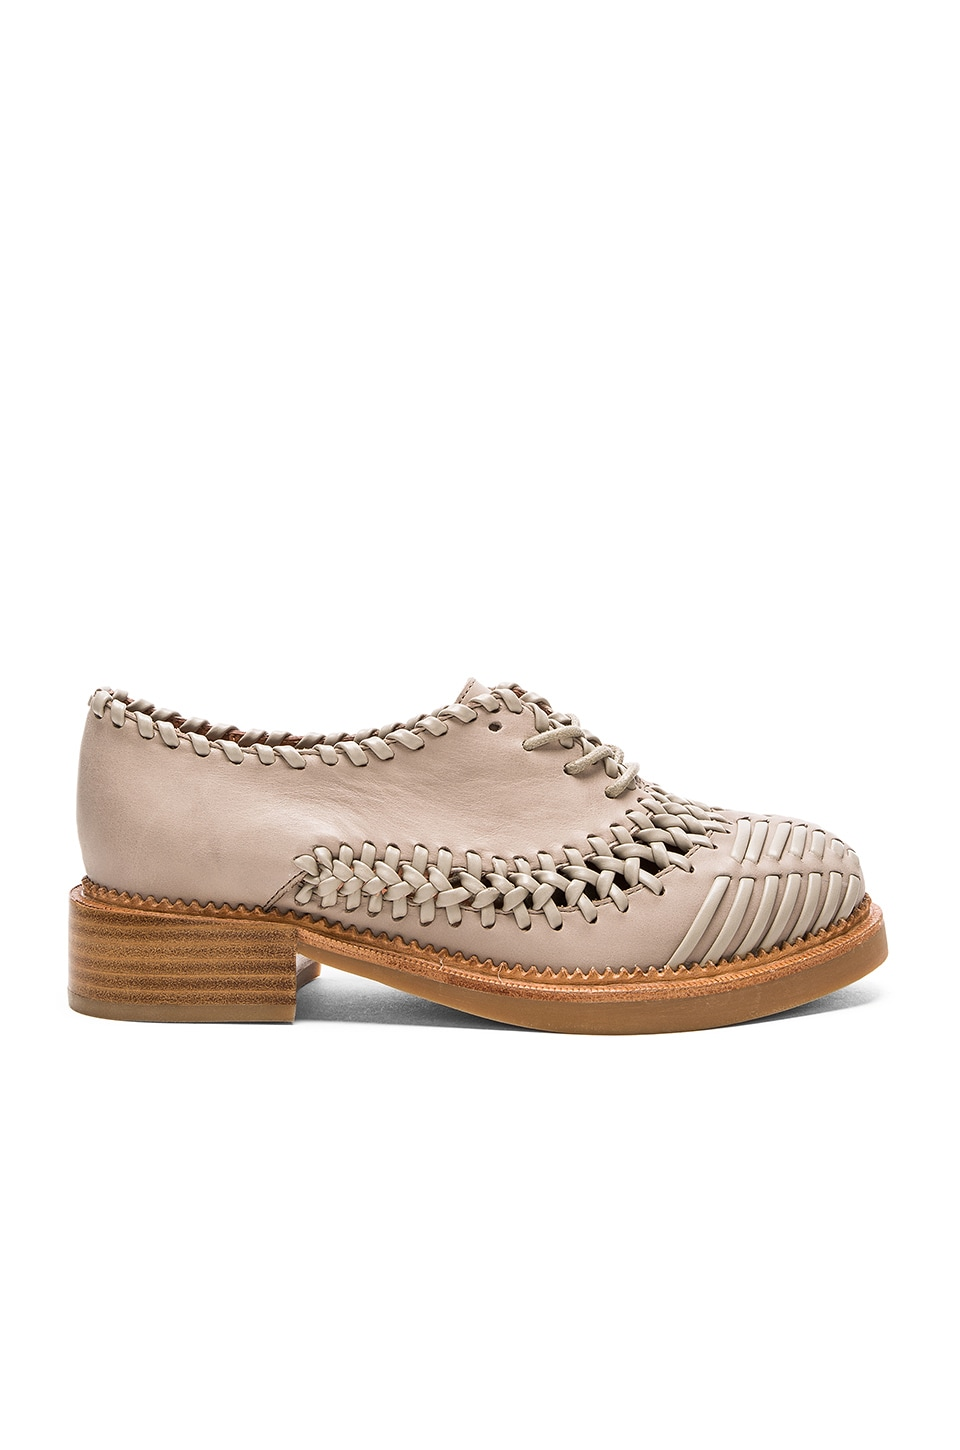 Jeffrey Campbell Vindas Oxfords in Grey